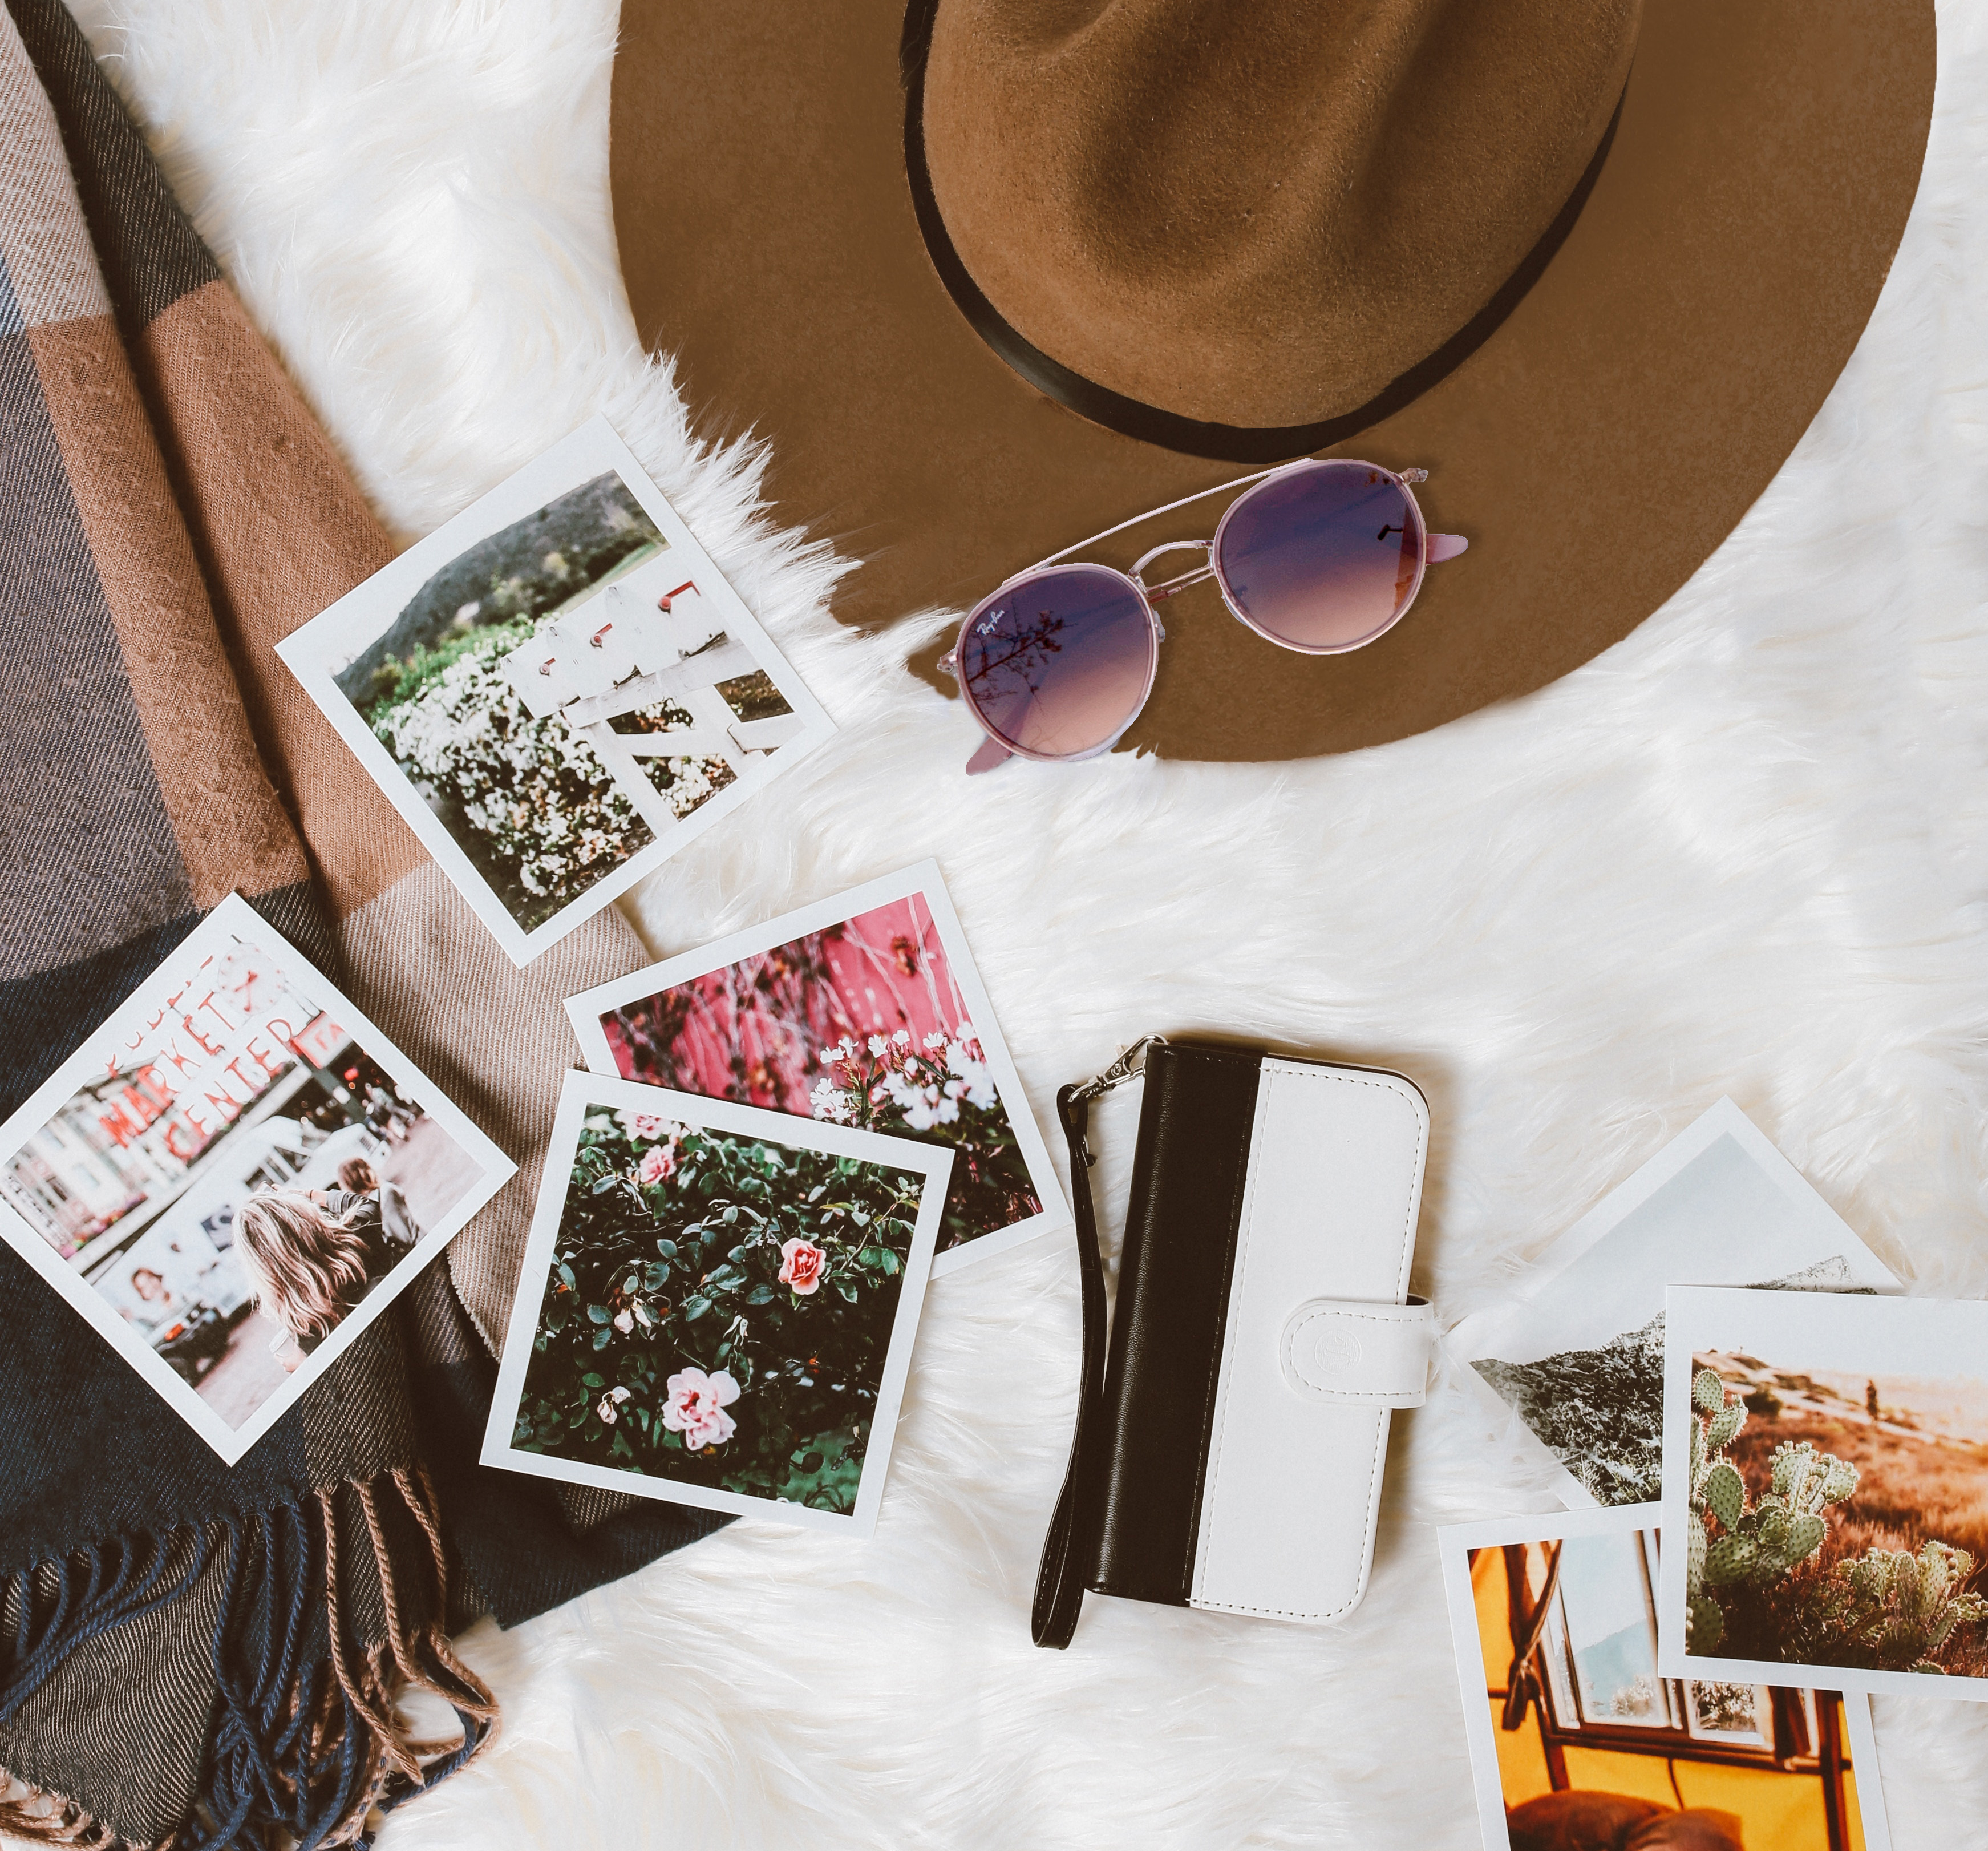 Lifestyle Image Ray-Ban Best of 2019 Women's